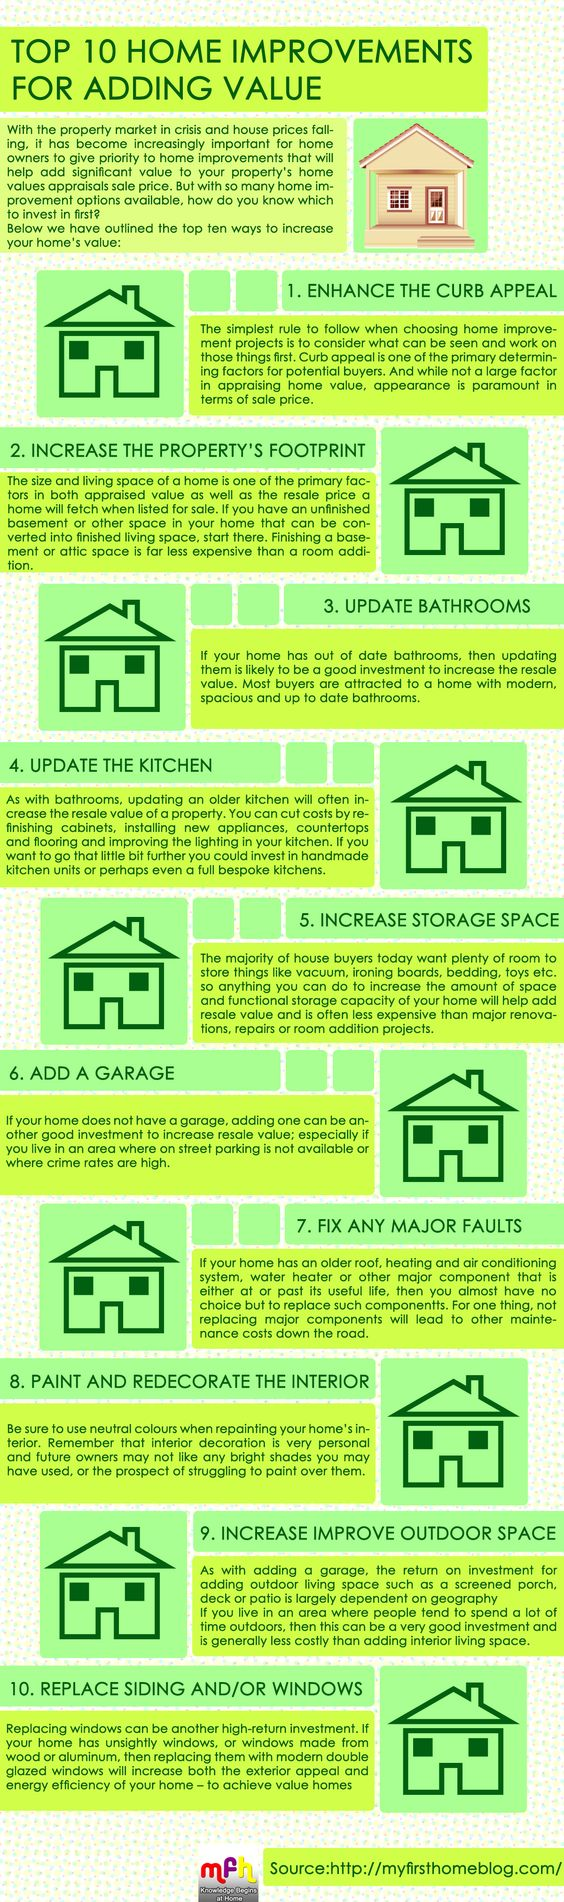 Top 10 Home Improvements For Adding Value With The